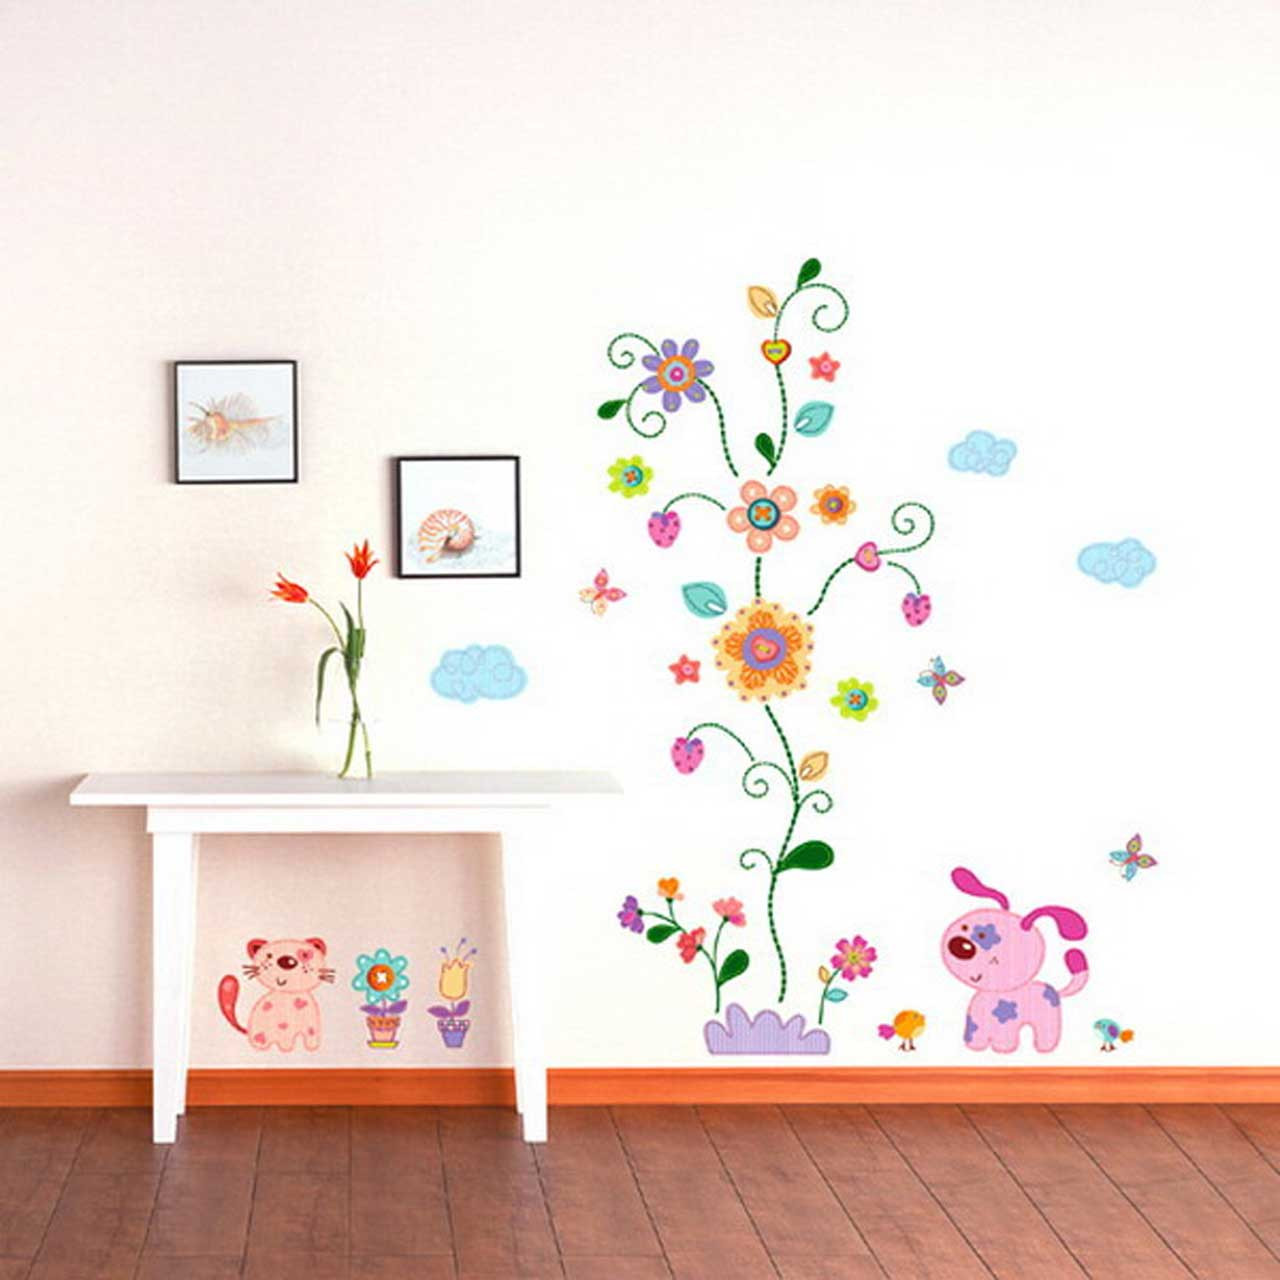 Best ideas about Kids Room Wall Art . Save or Pin Kids Desire and Kids Room Decor Amaza Design Now.